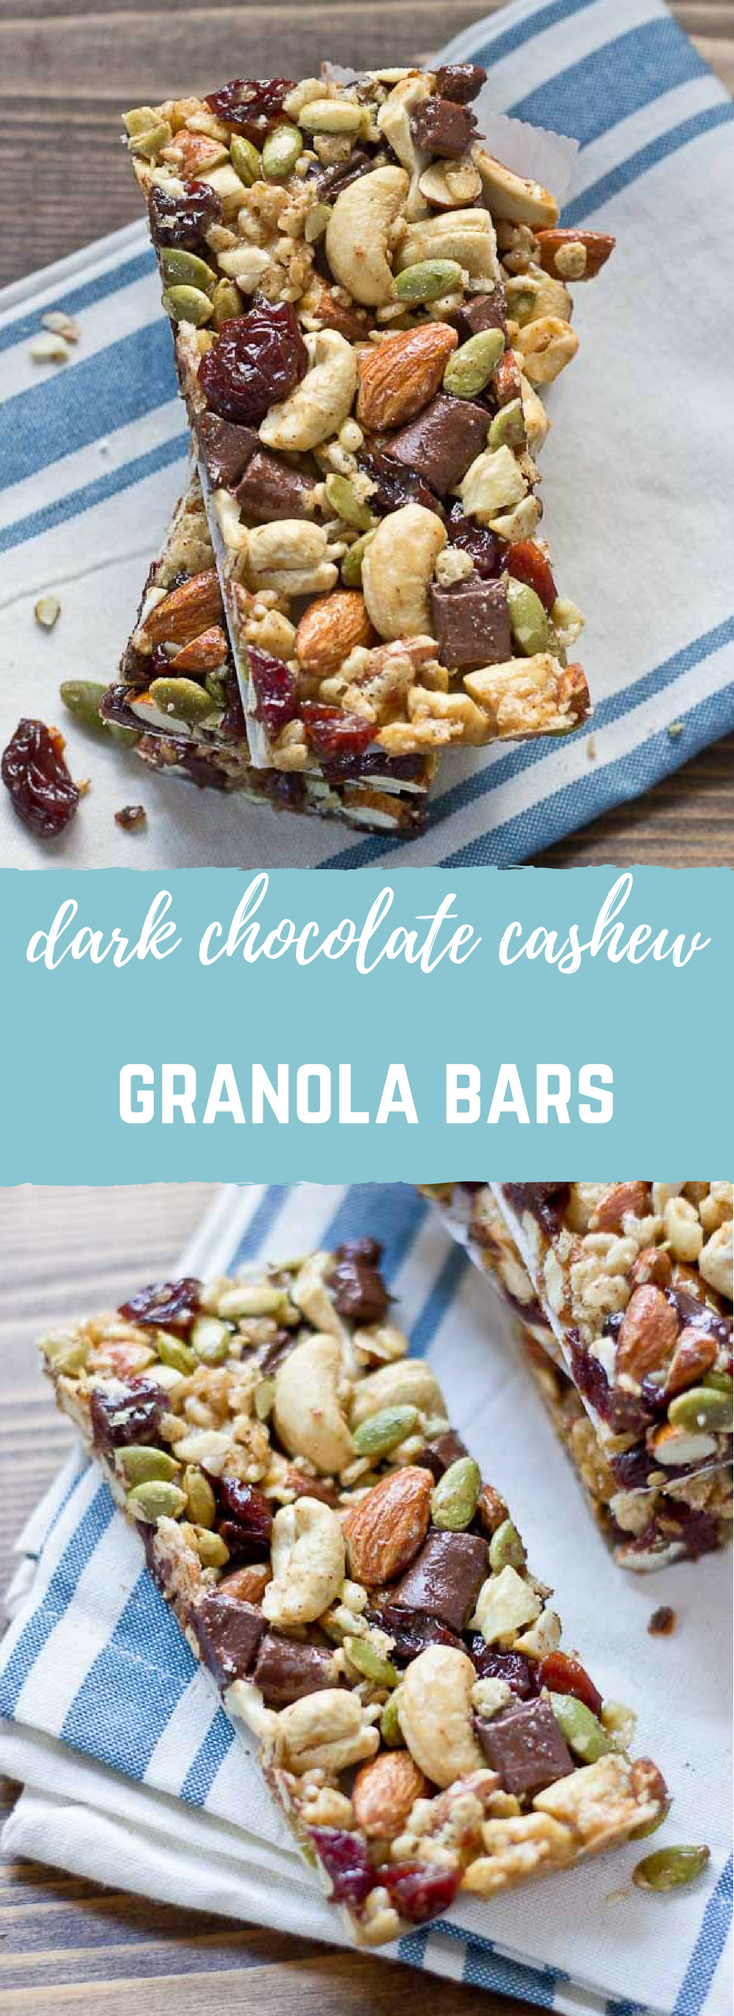 Tart Cherry, Dark Chocolate & Cashew Granola Bars | Gluten Free